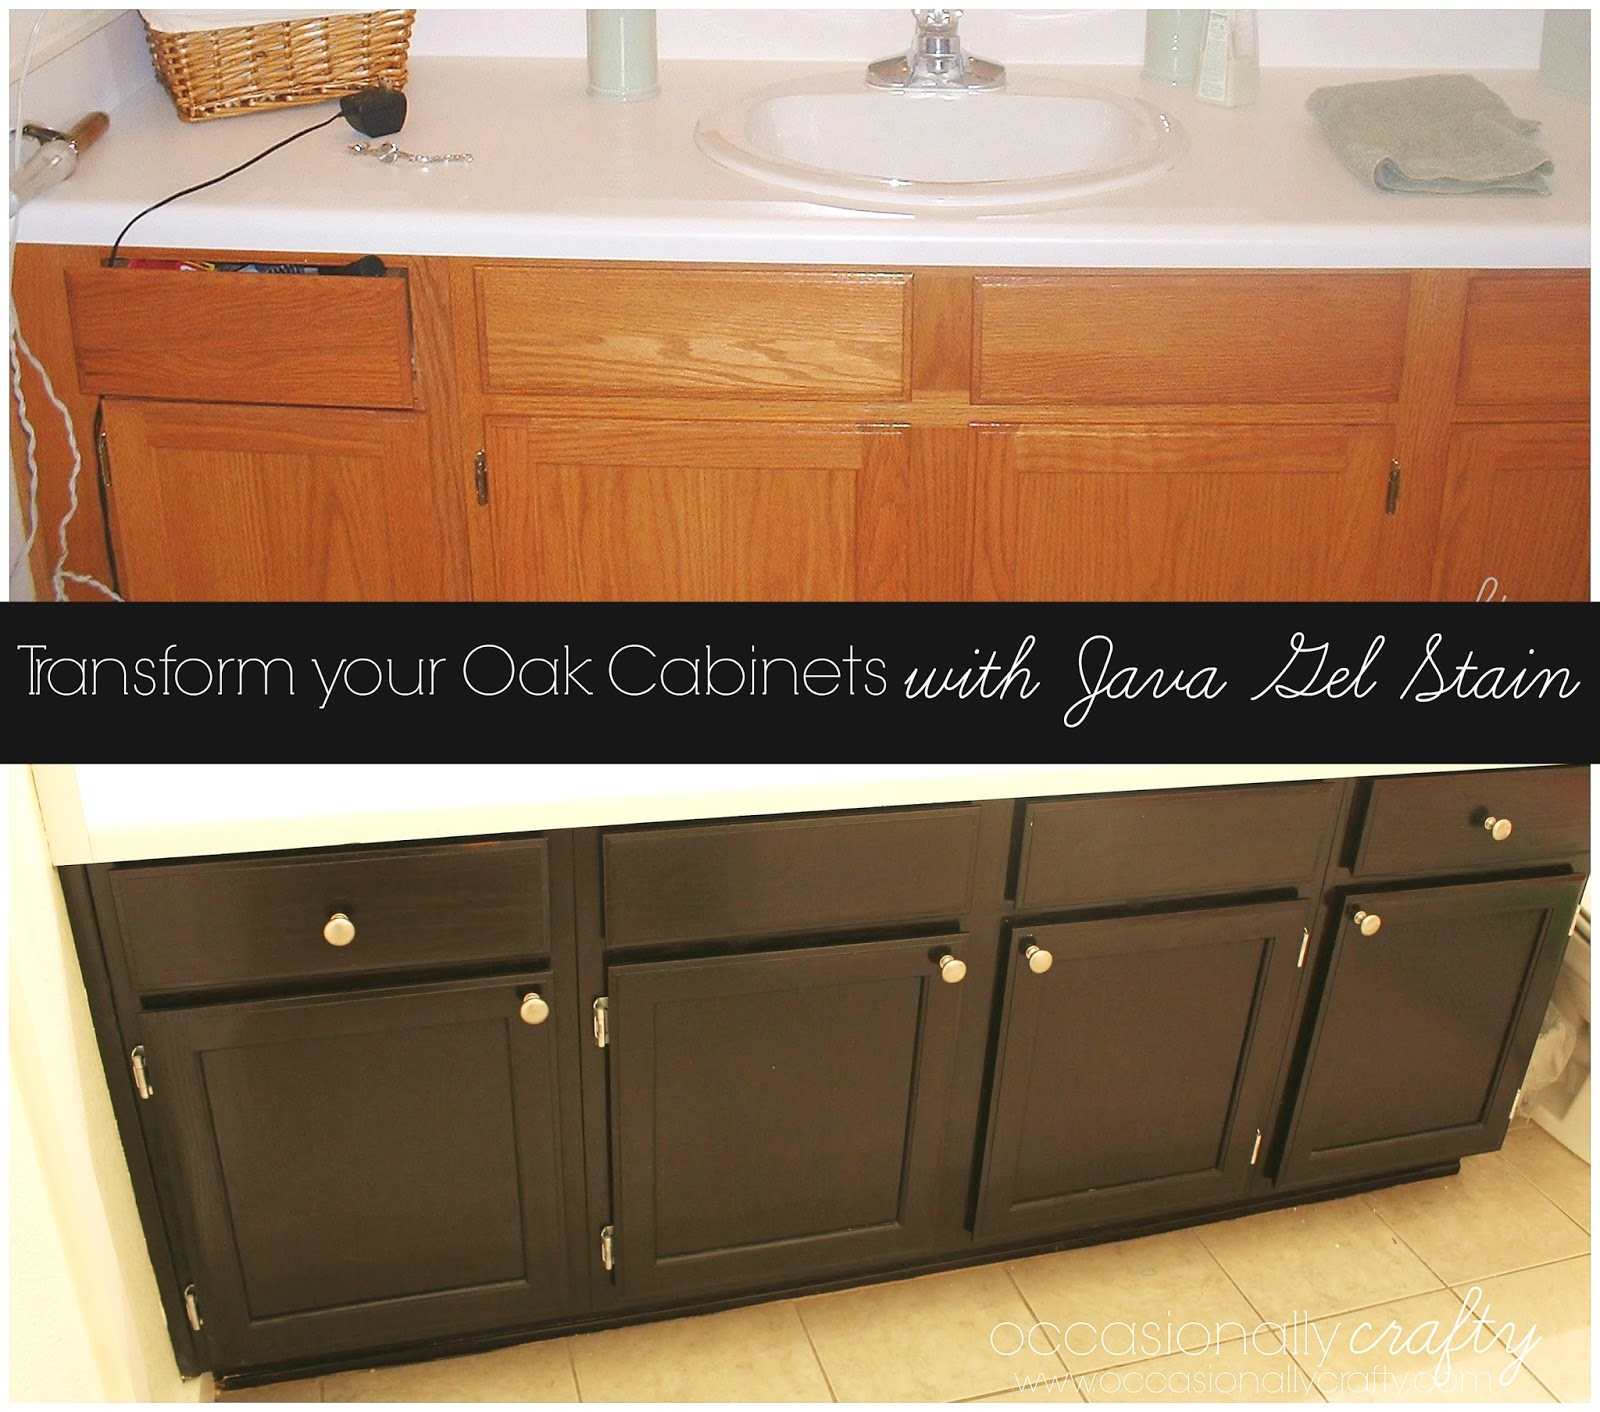 Elegant Transform Your Golden Oak Cabinets With Java Gel Stain | Occasionally  Crafty: Transform Your Golden Oak Cabinets With Java Gel Stain